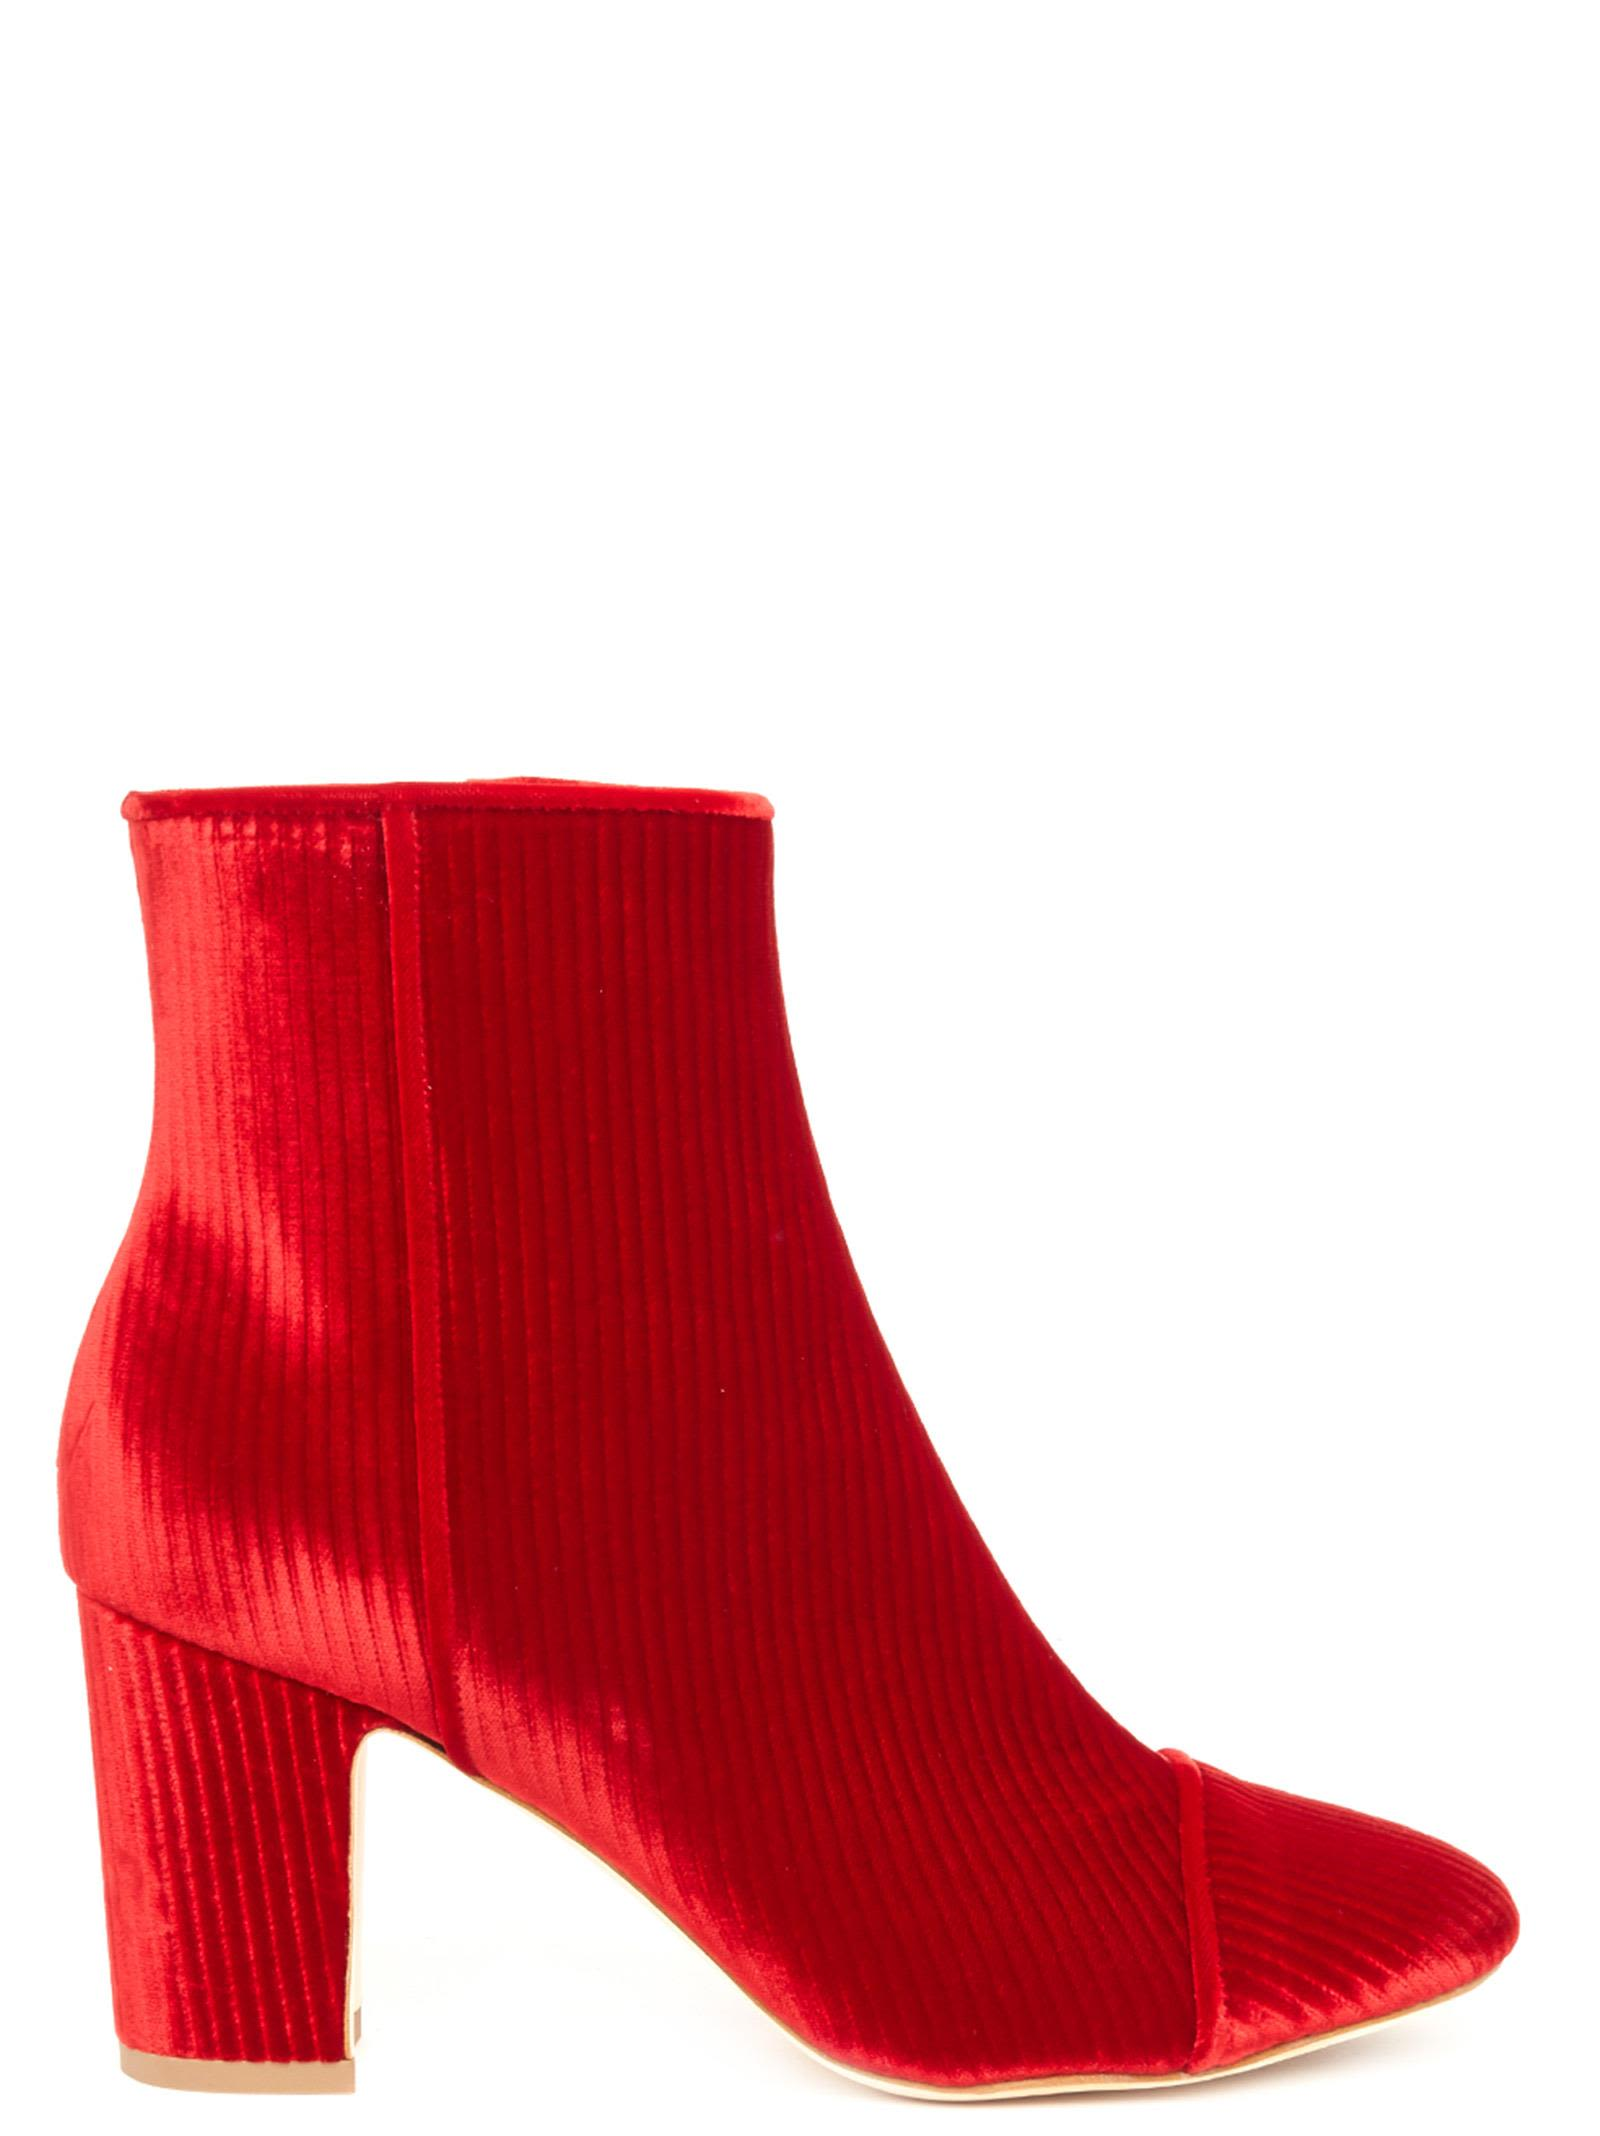 Polly Plume 'ally' Shoes